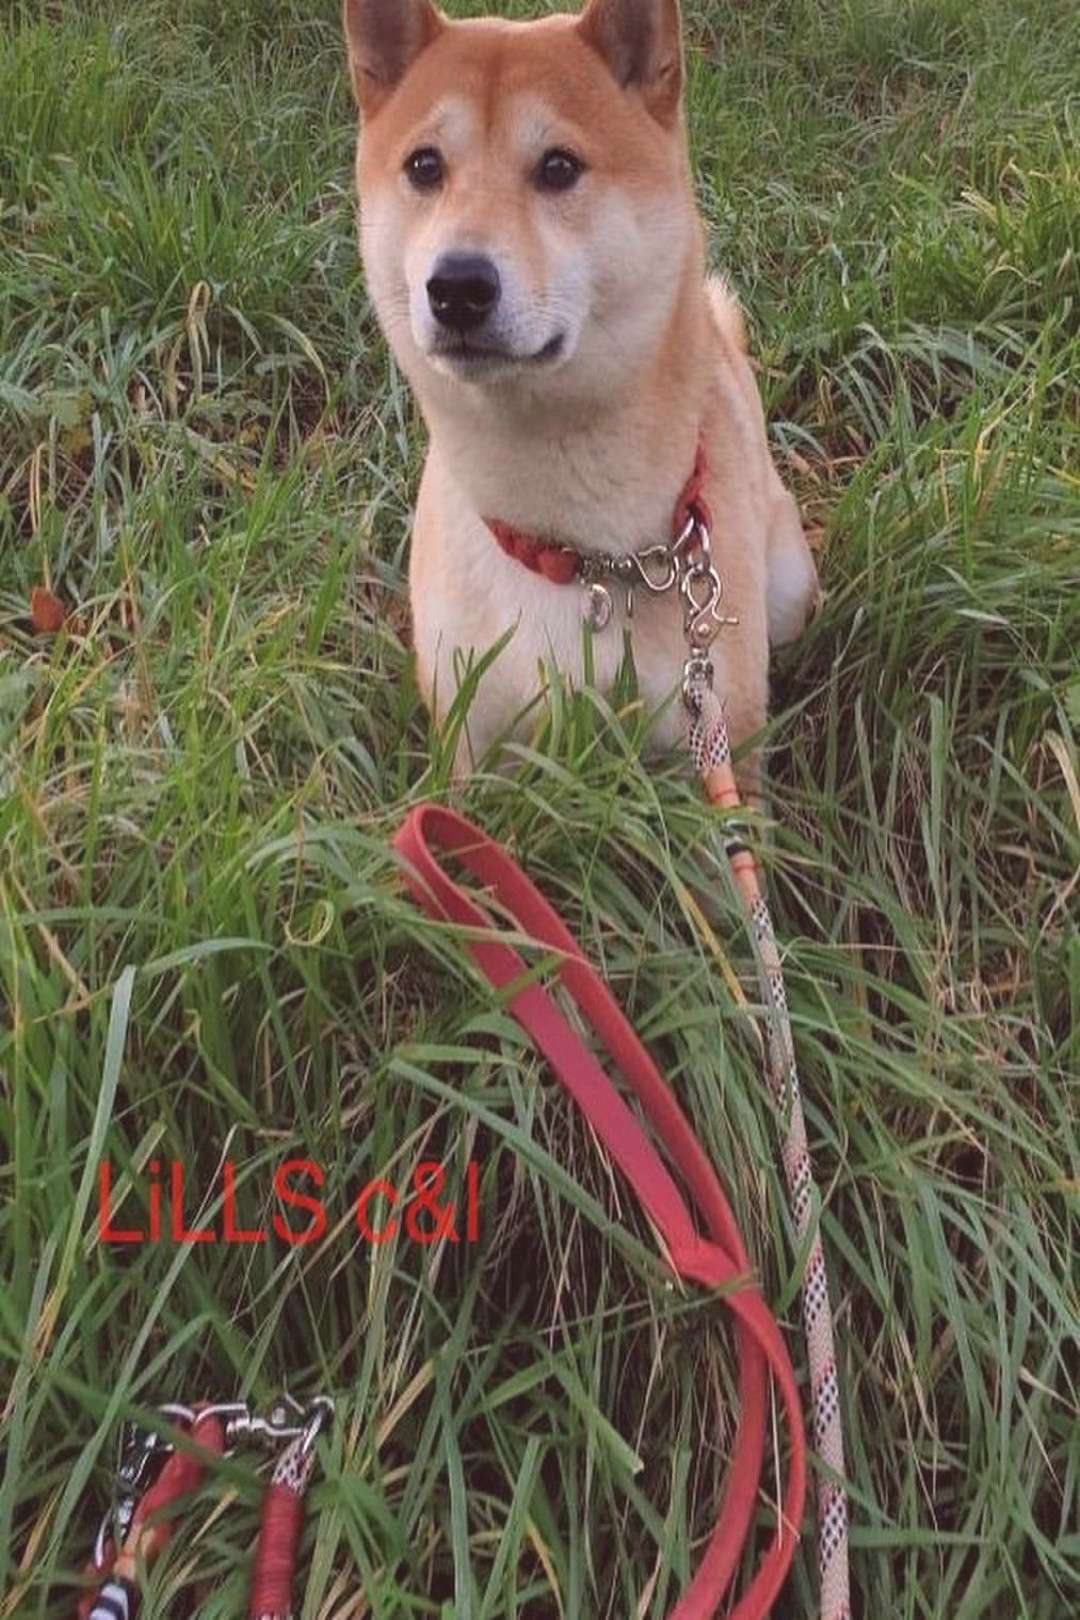 LiLLS collarsleashes on April 21 2020 1 person grass dog outdoor